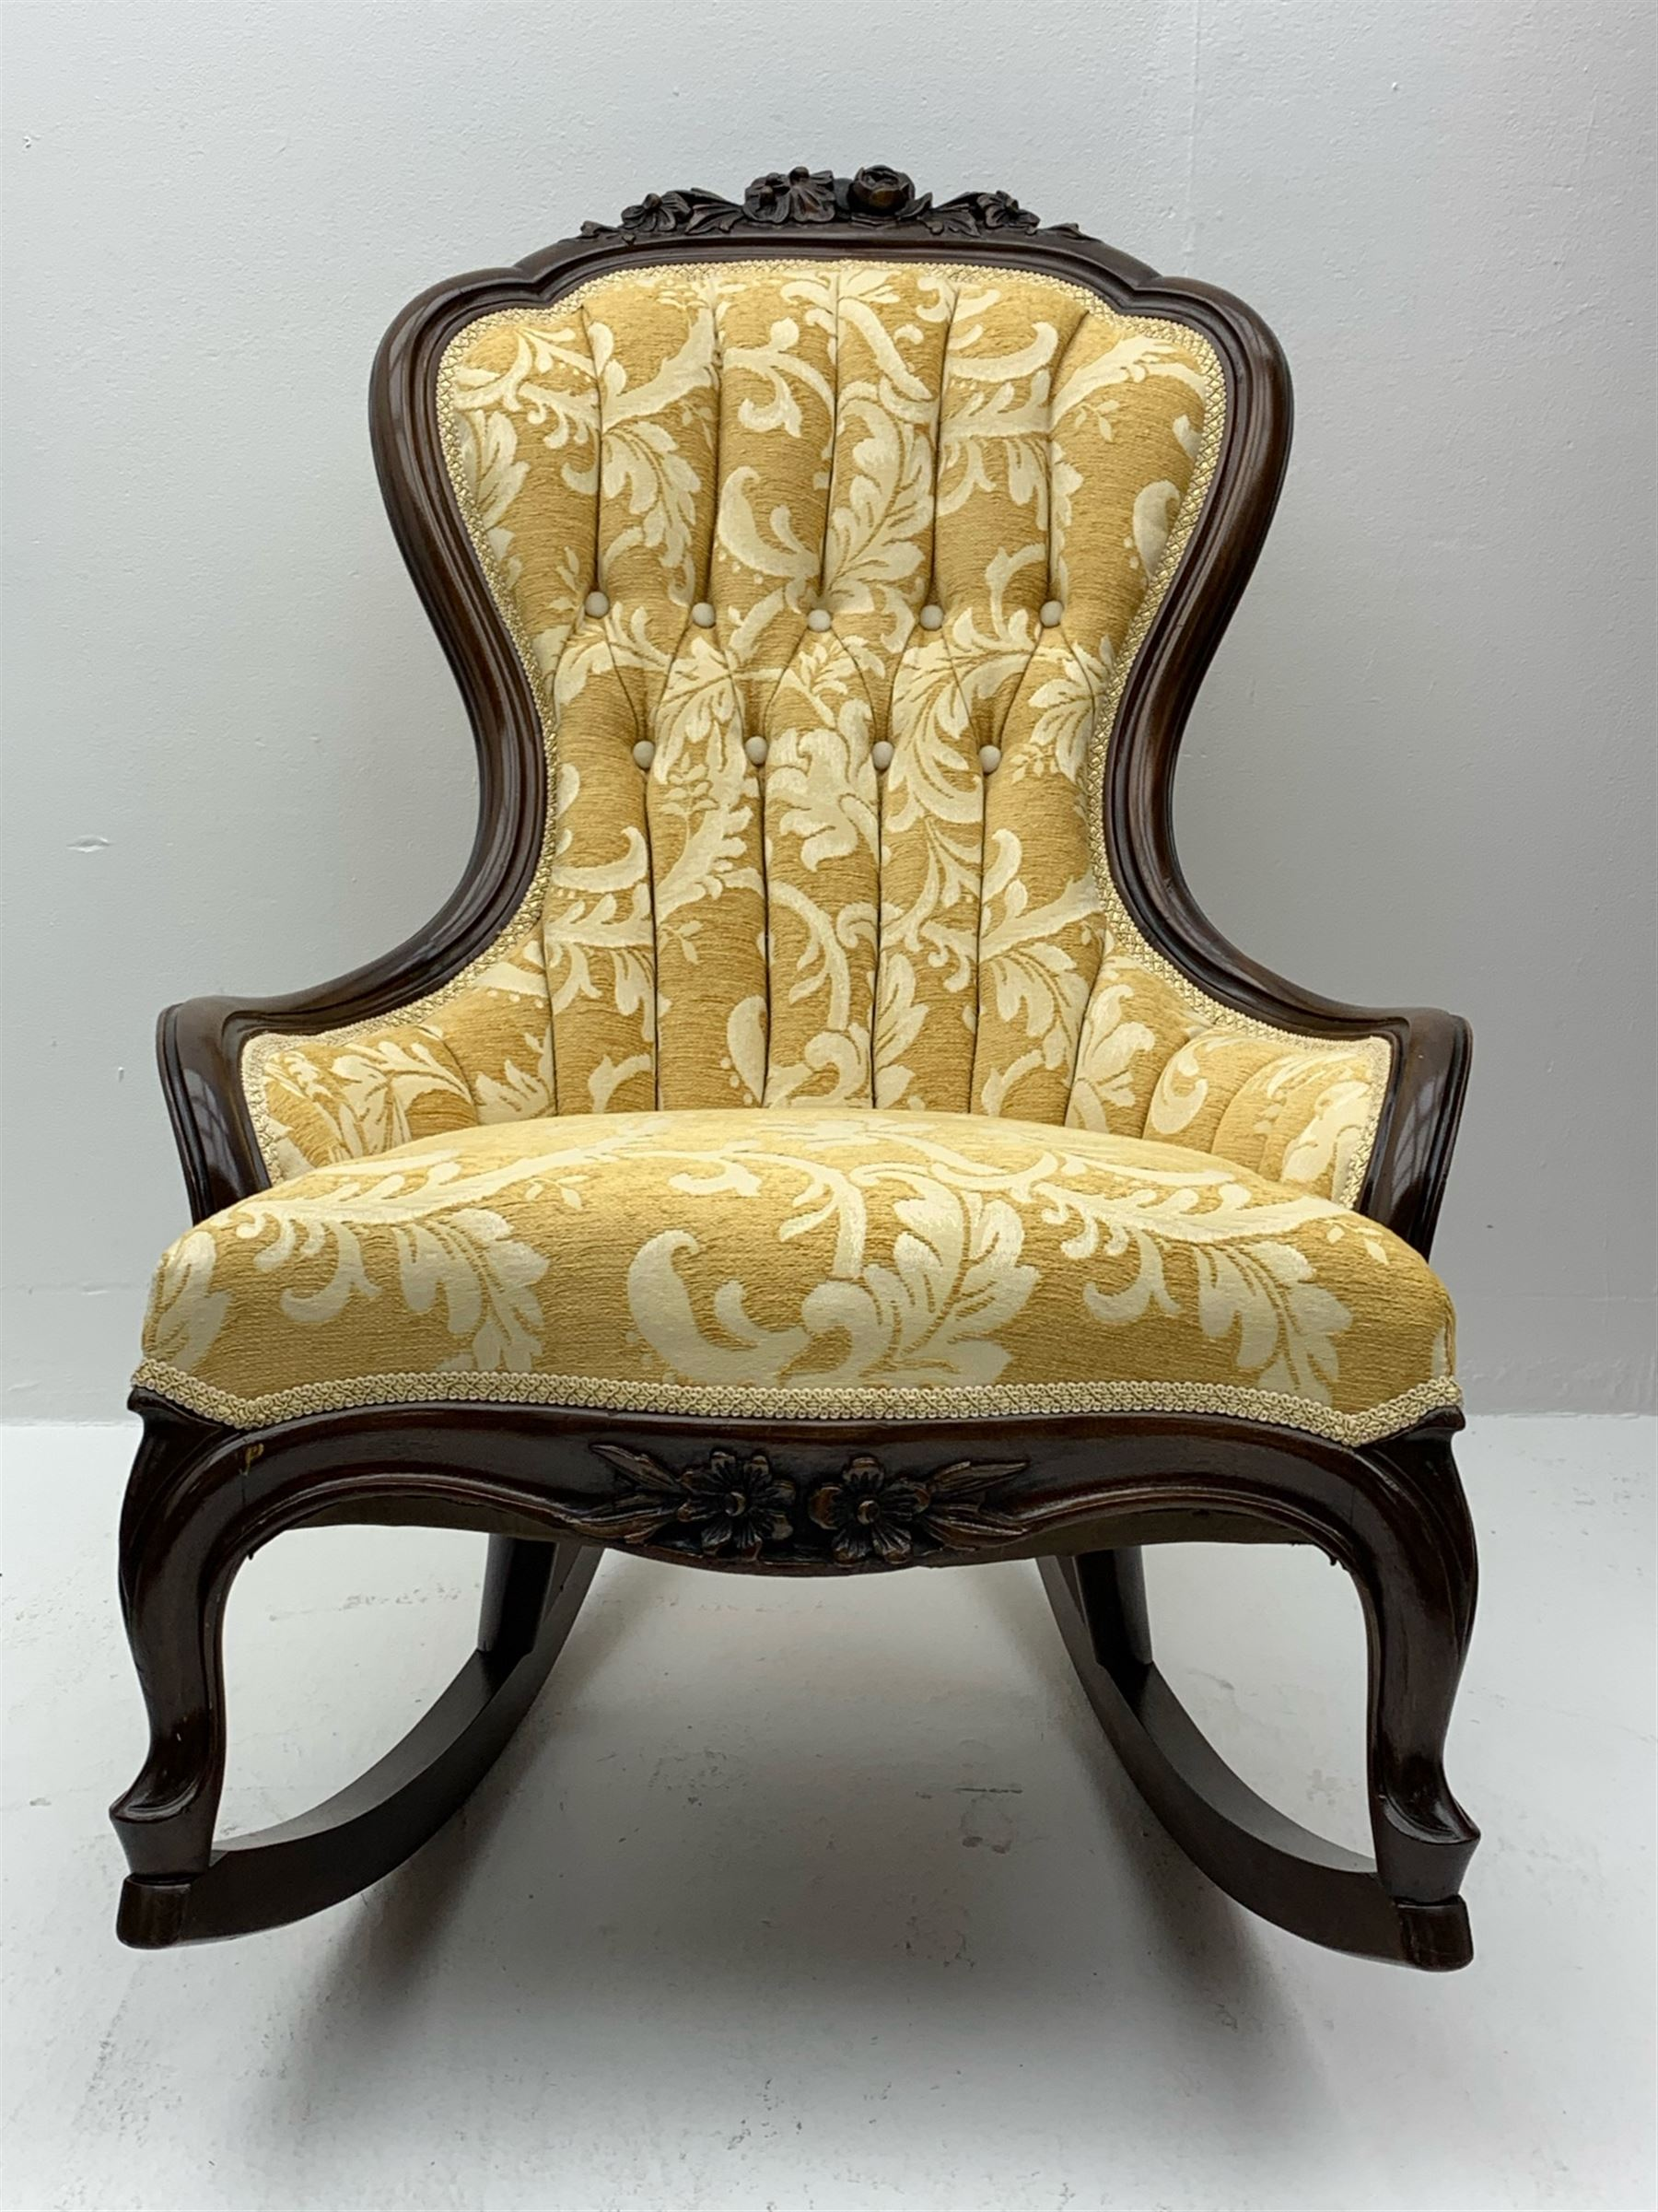 Early 20th century rocking chair with raised floral and foliate carving to frame - Image 2 of 3